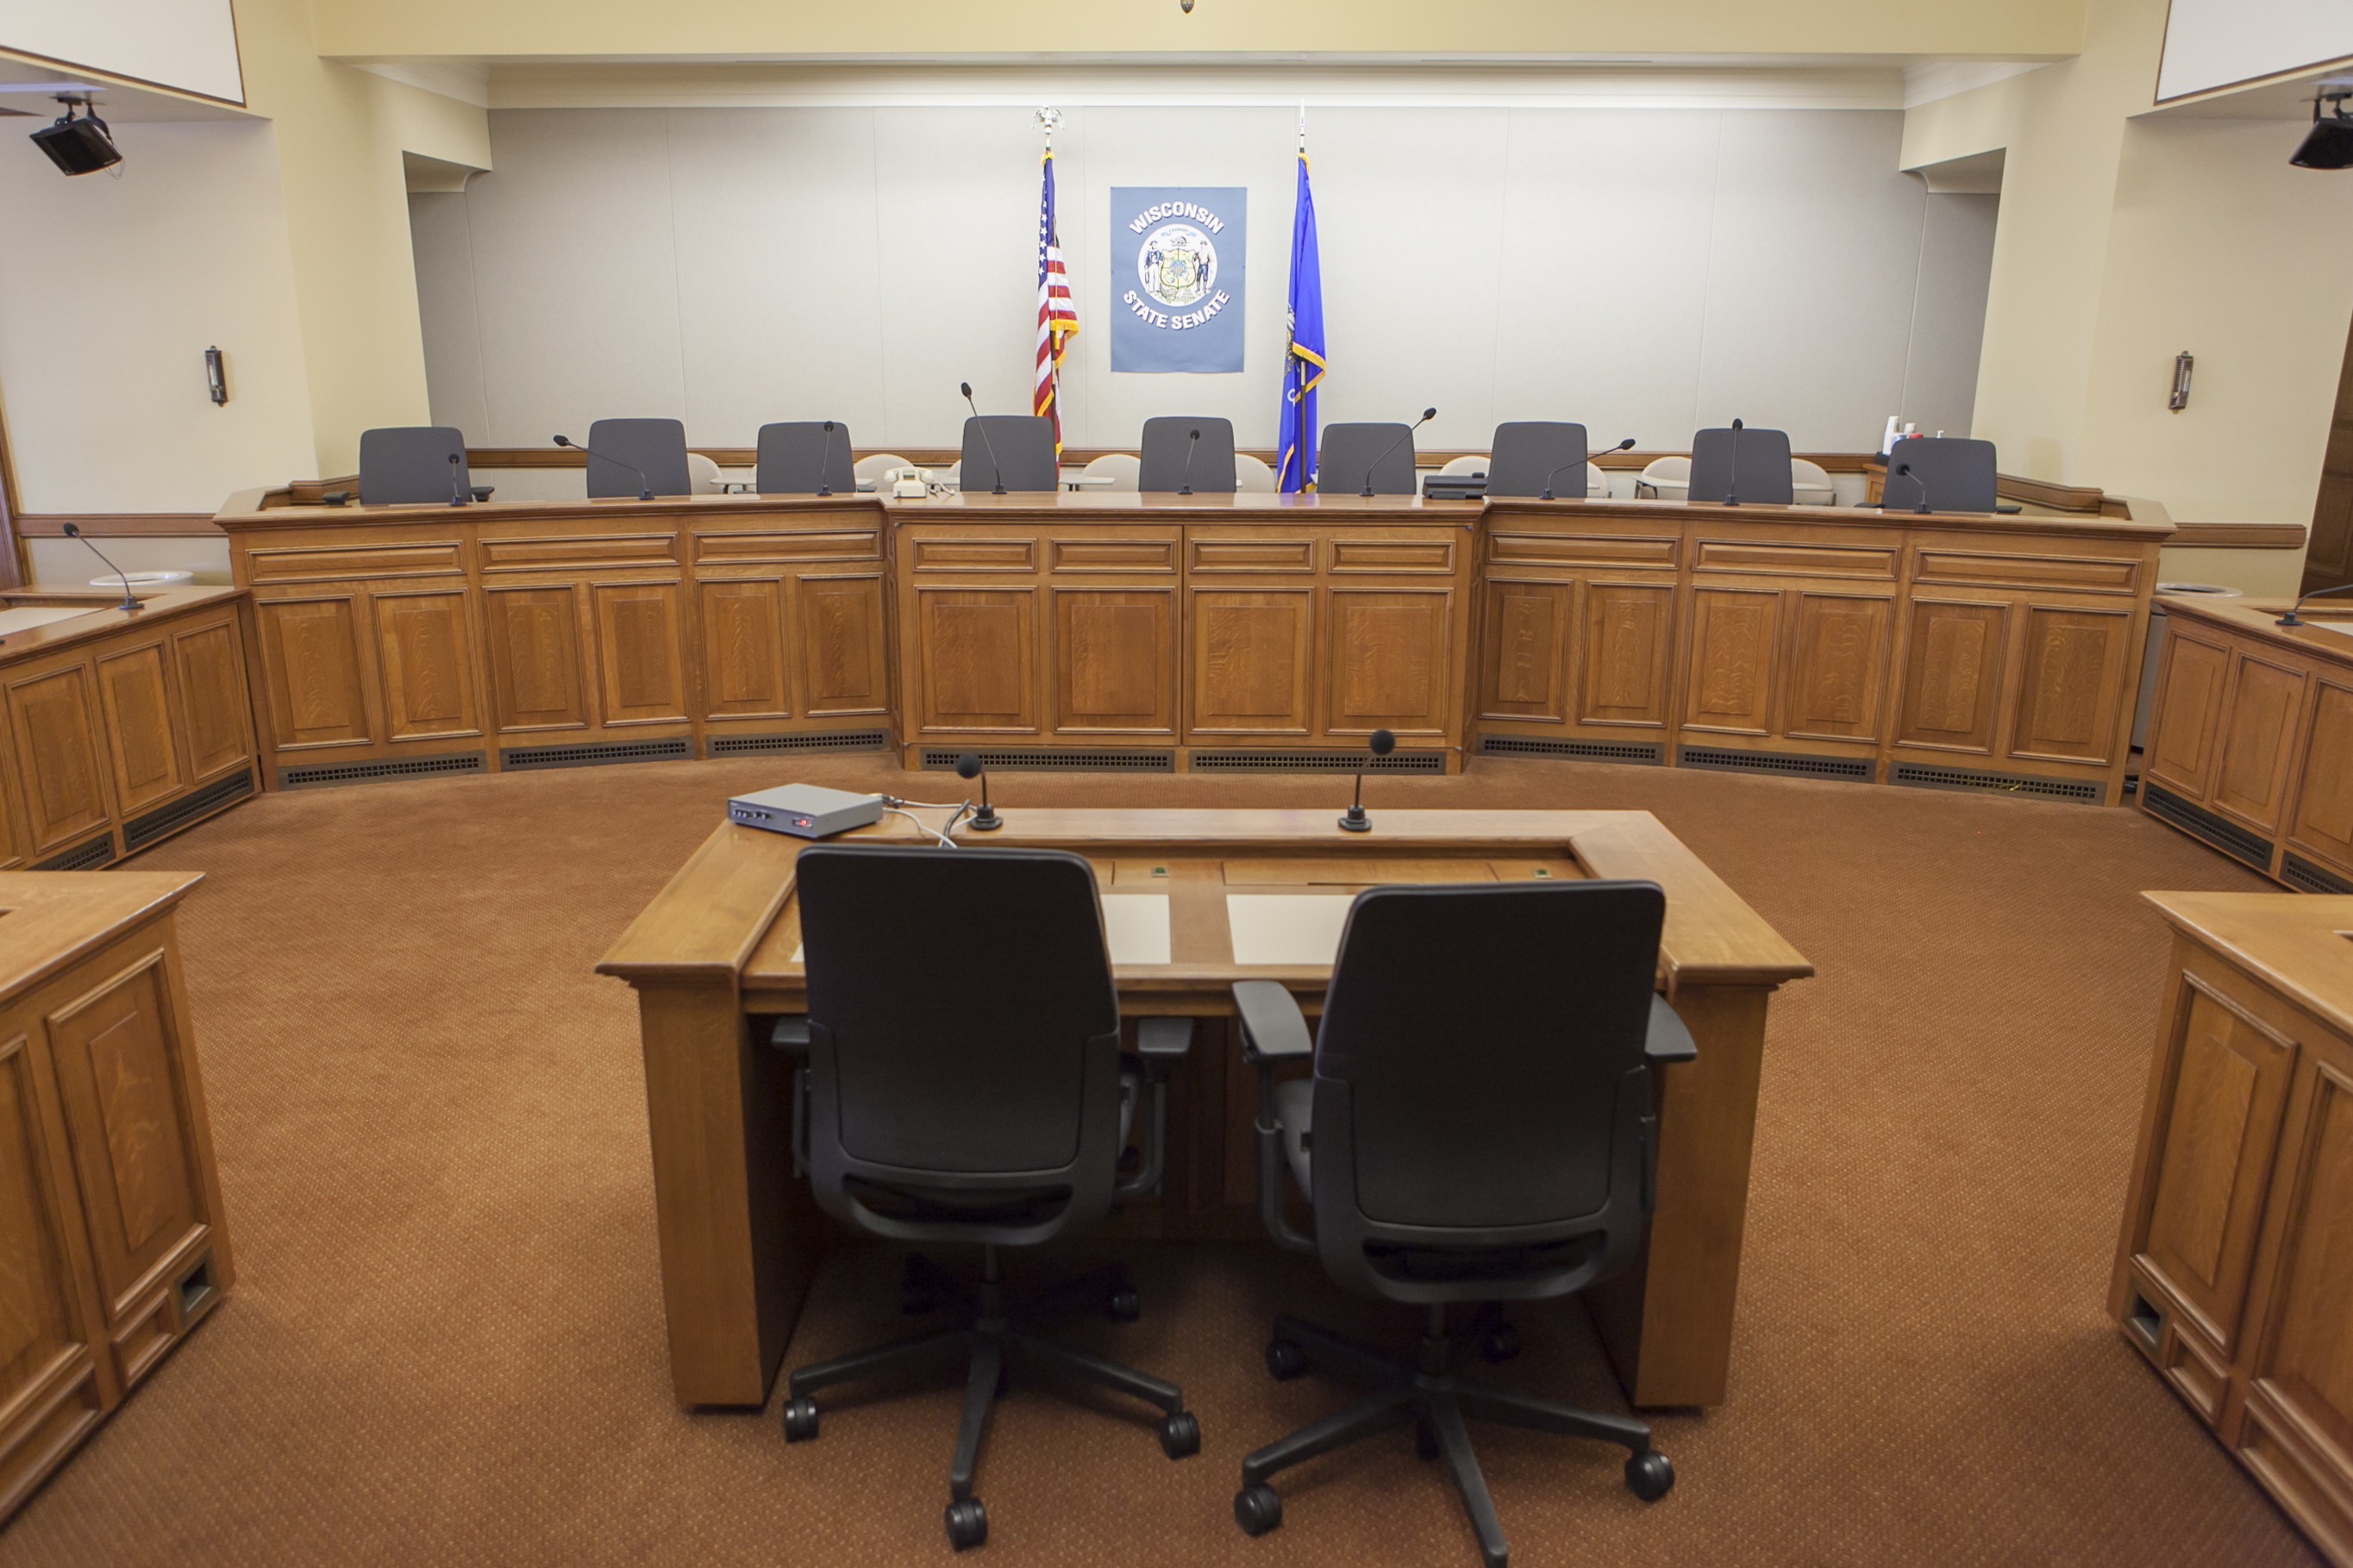 411S Hearing Room (100 people) View 2